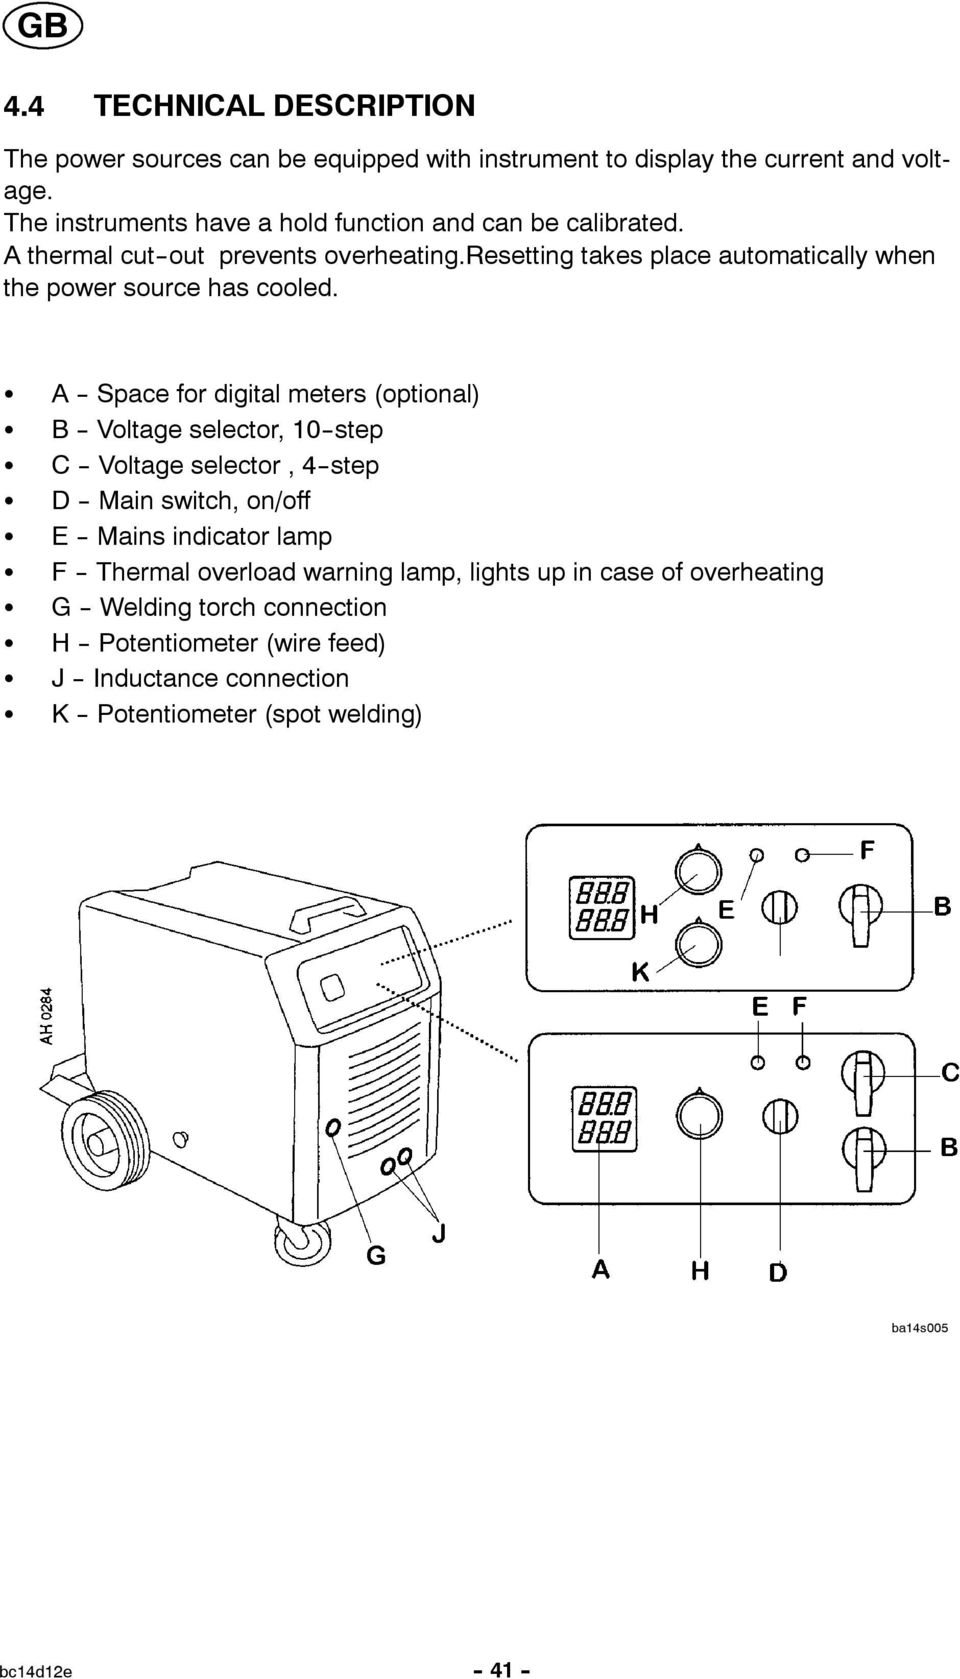 Lkb 265 320 Bruksanvisning Brugsanvisning Spot Welding Wiring Diagram Resetting Takes Place Automatically When The Power Source Has Cooled